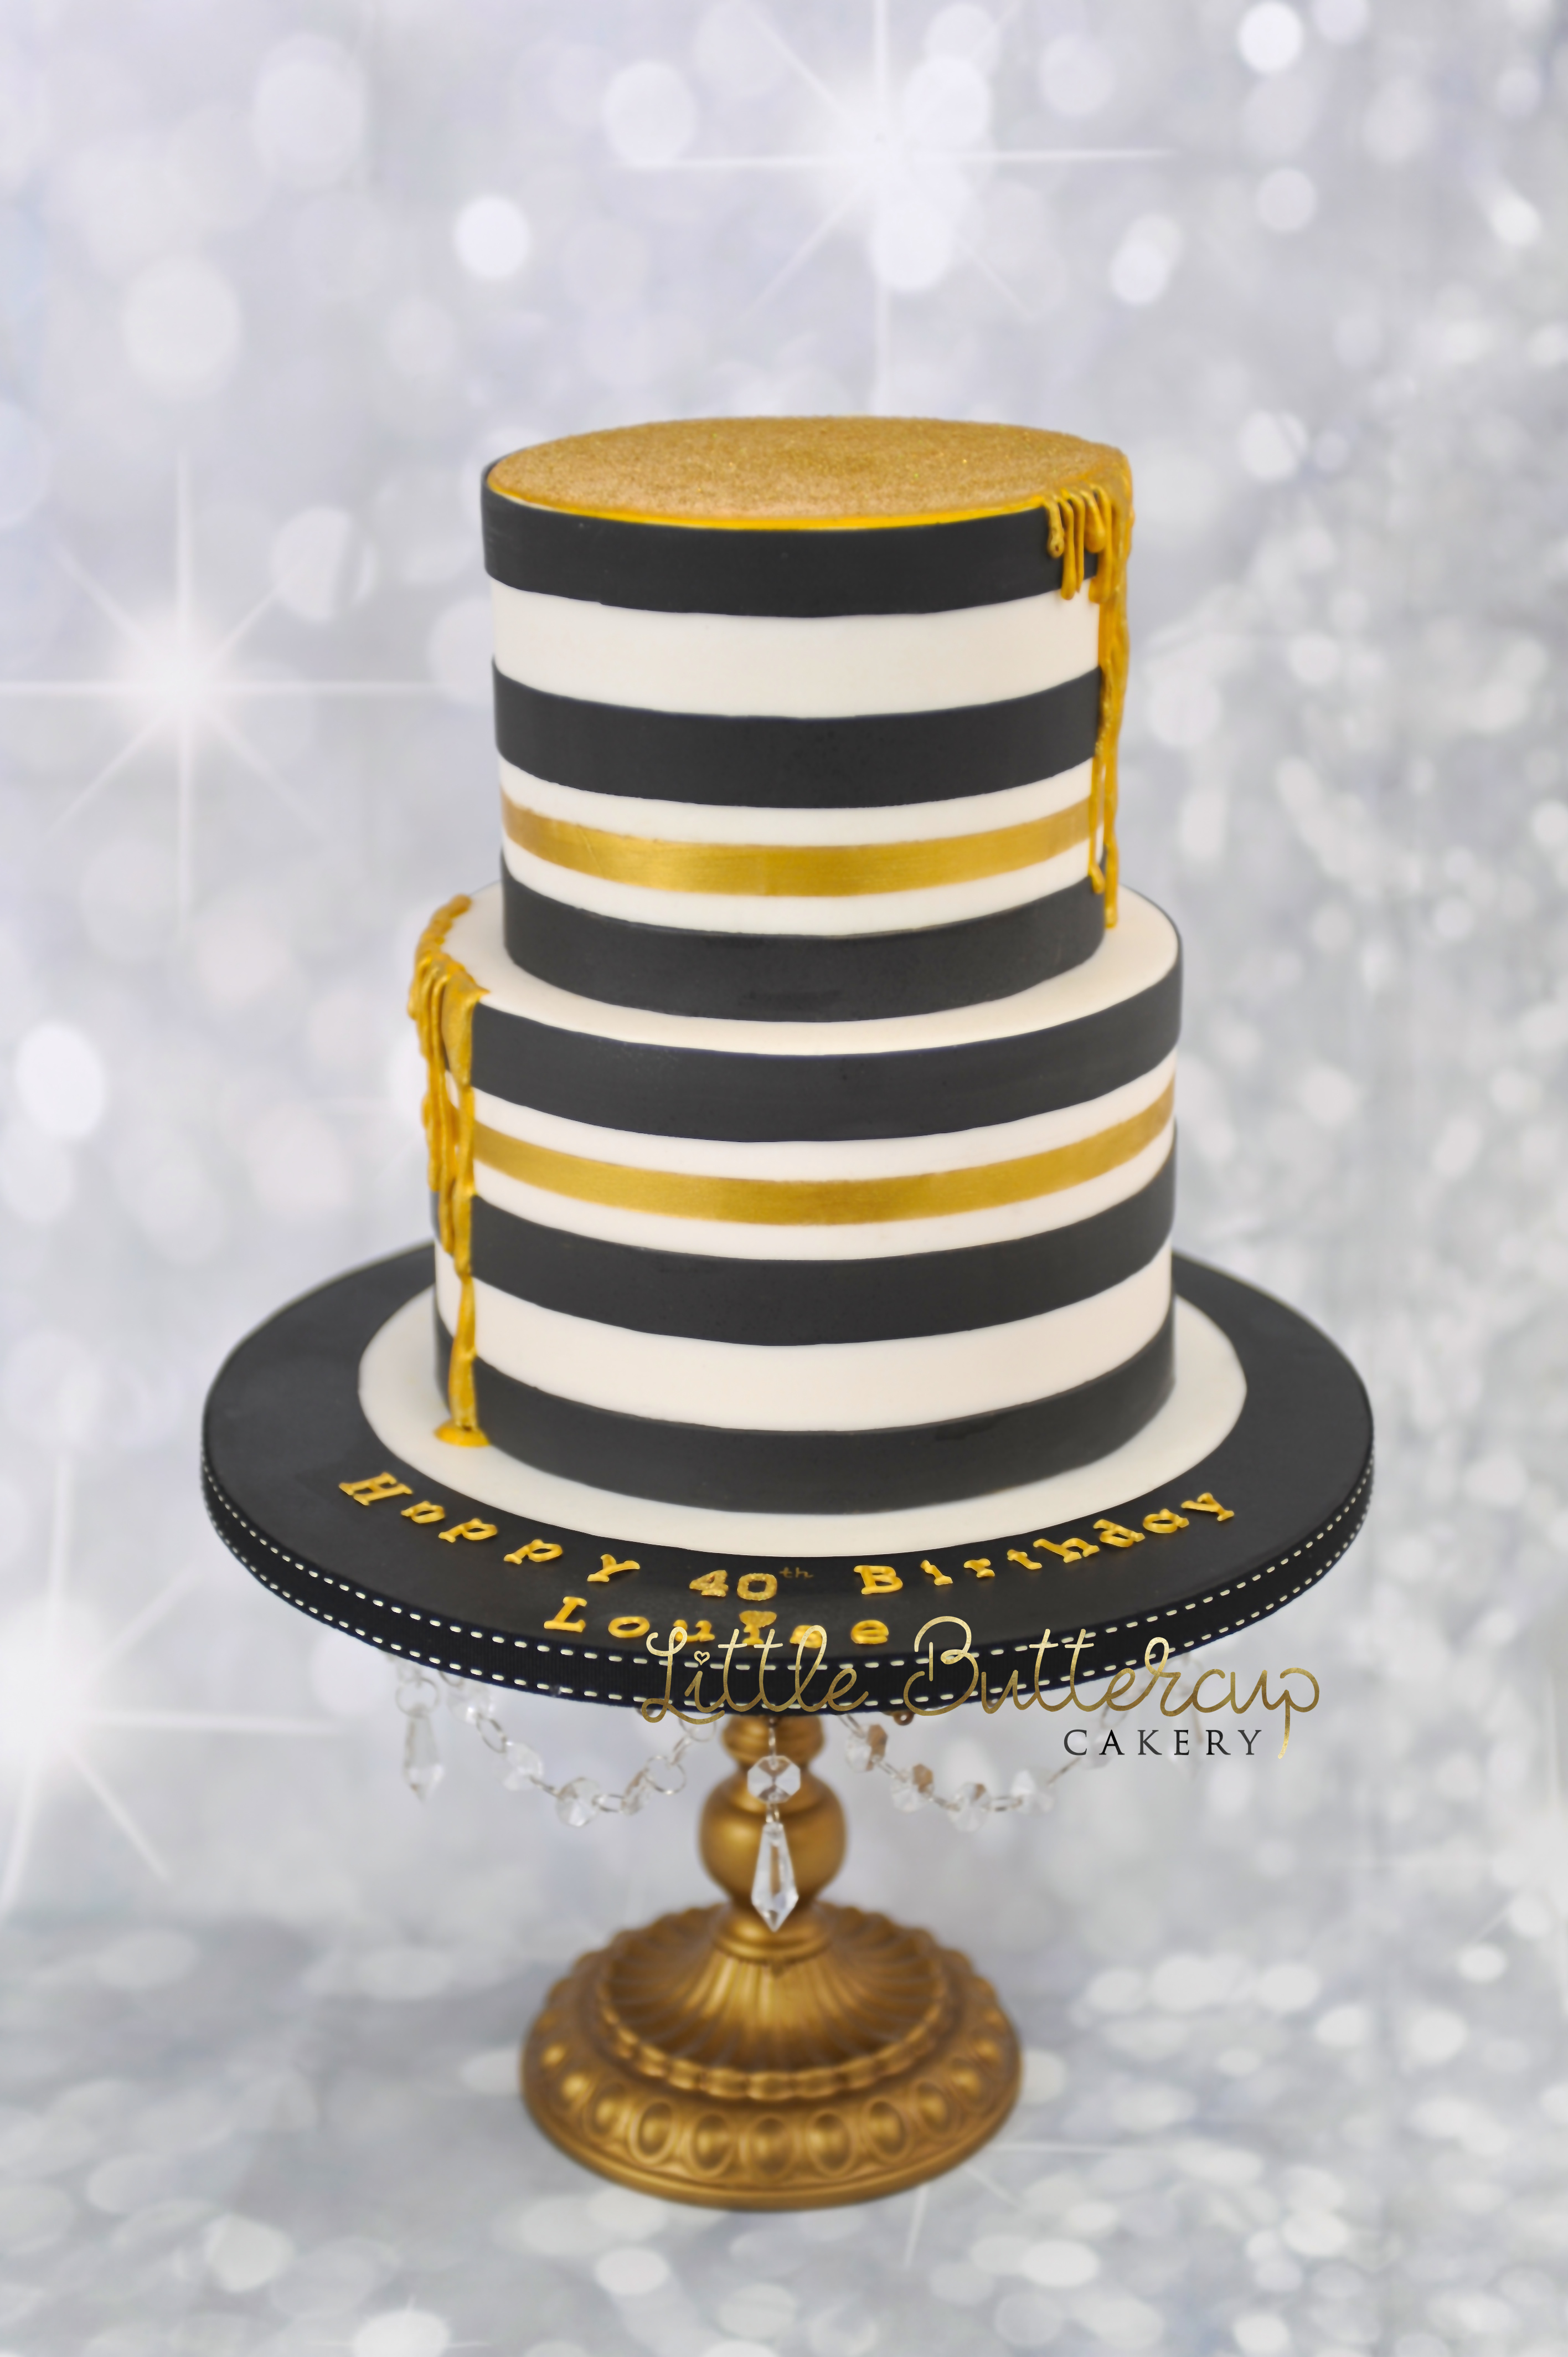 Black And White With Gold Drip Birthday Cake Previous Next View Larger Image